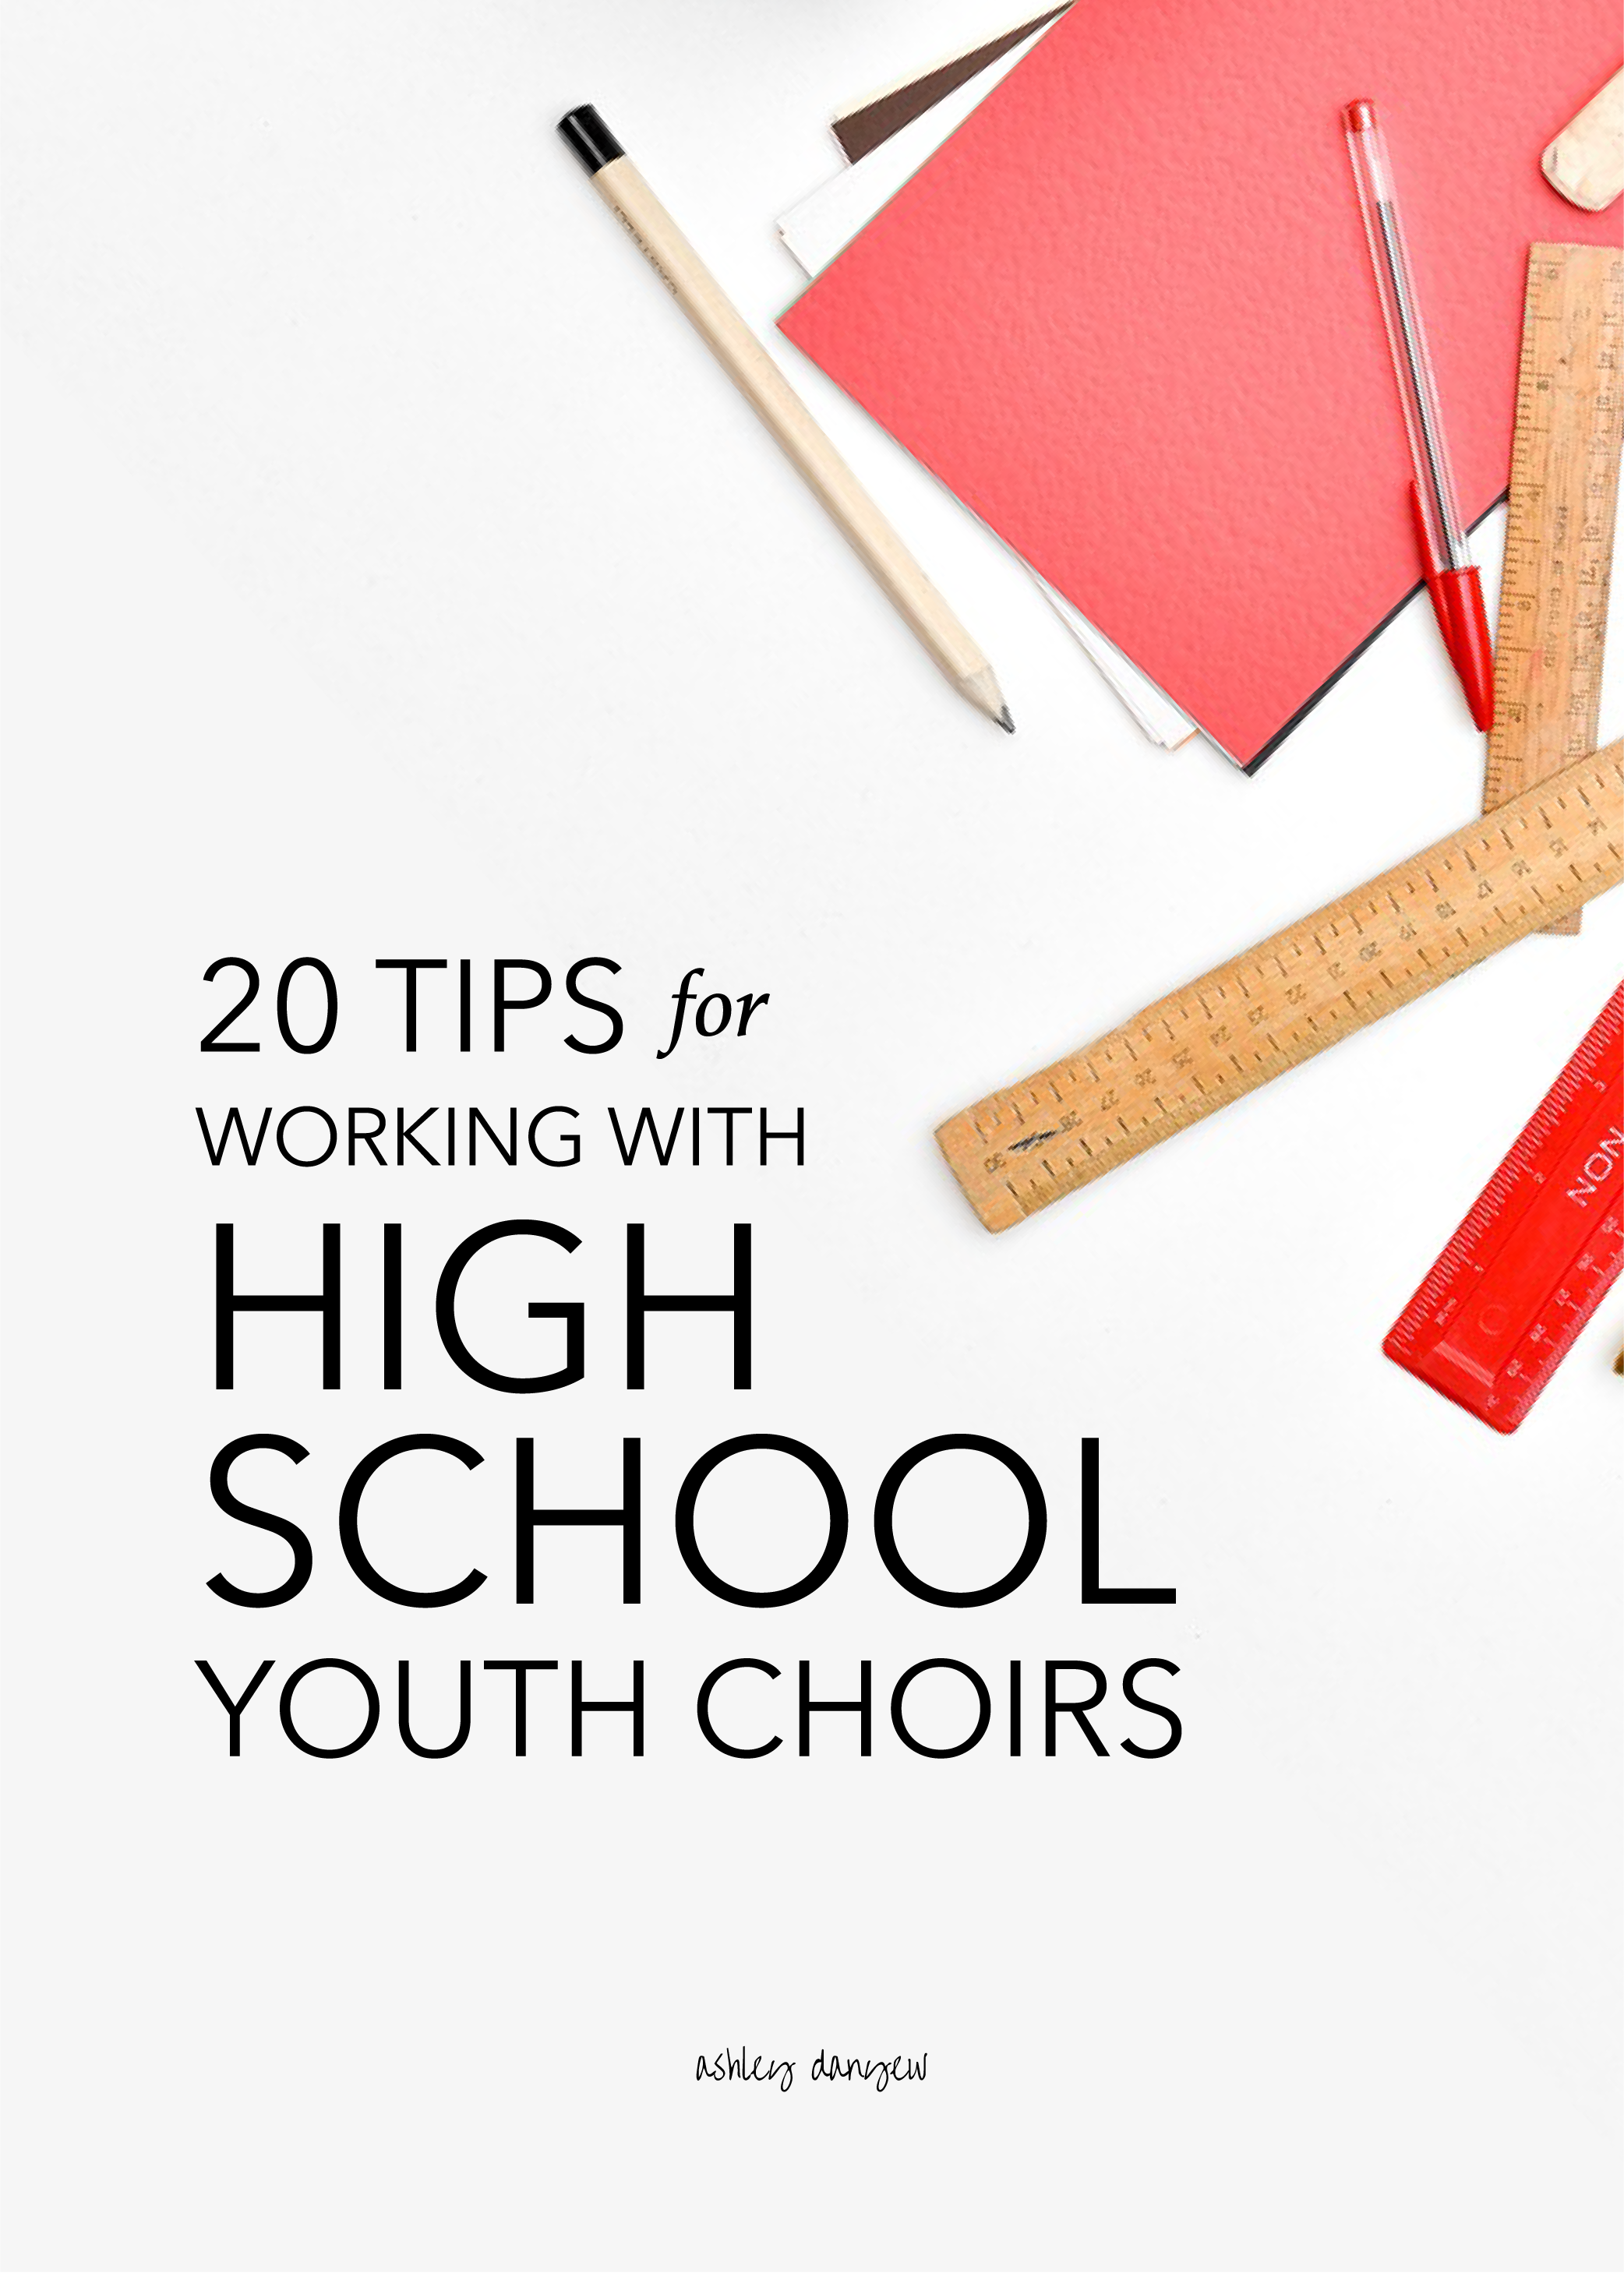 20 Tips for Working with High School Youth Choirs-12.png